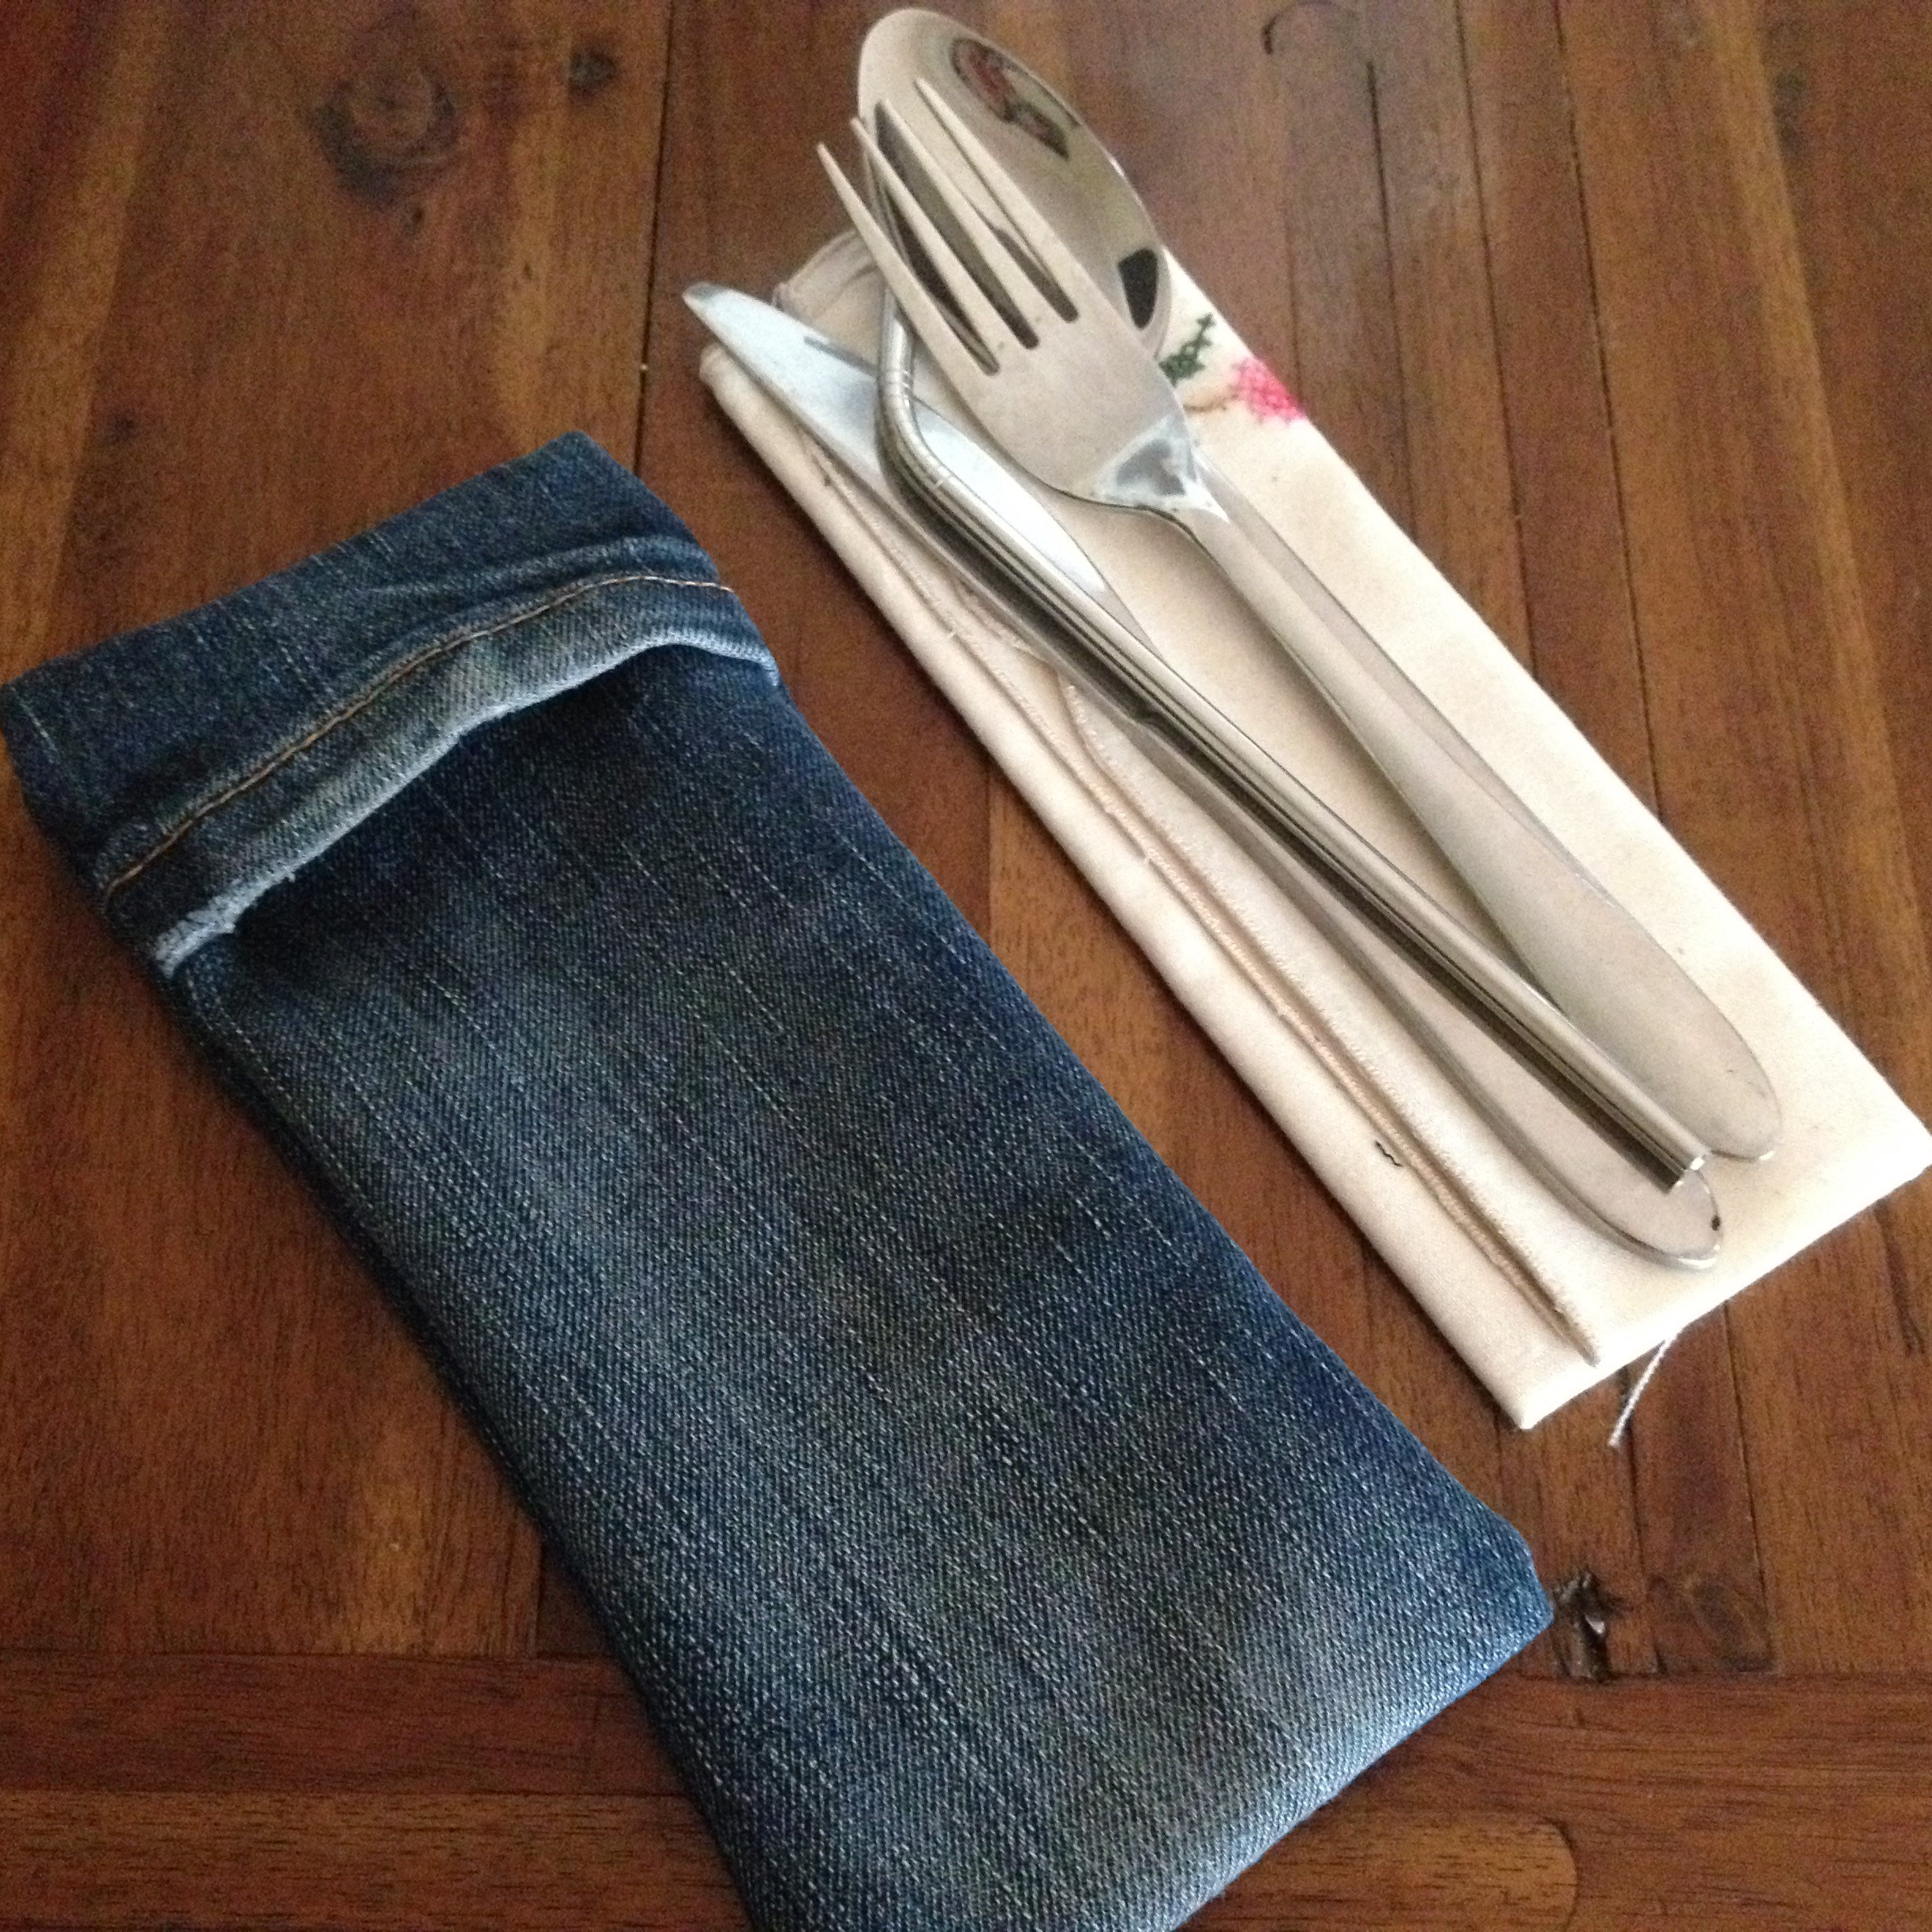 Diy Cutlery Holders Made From Scrap Material Gippsland Unwrapped